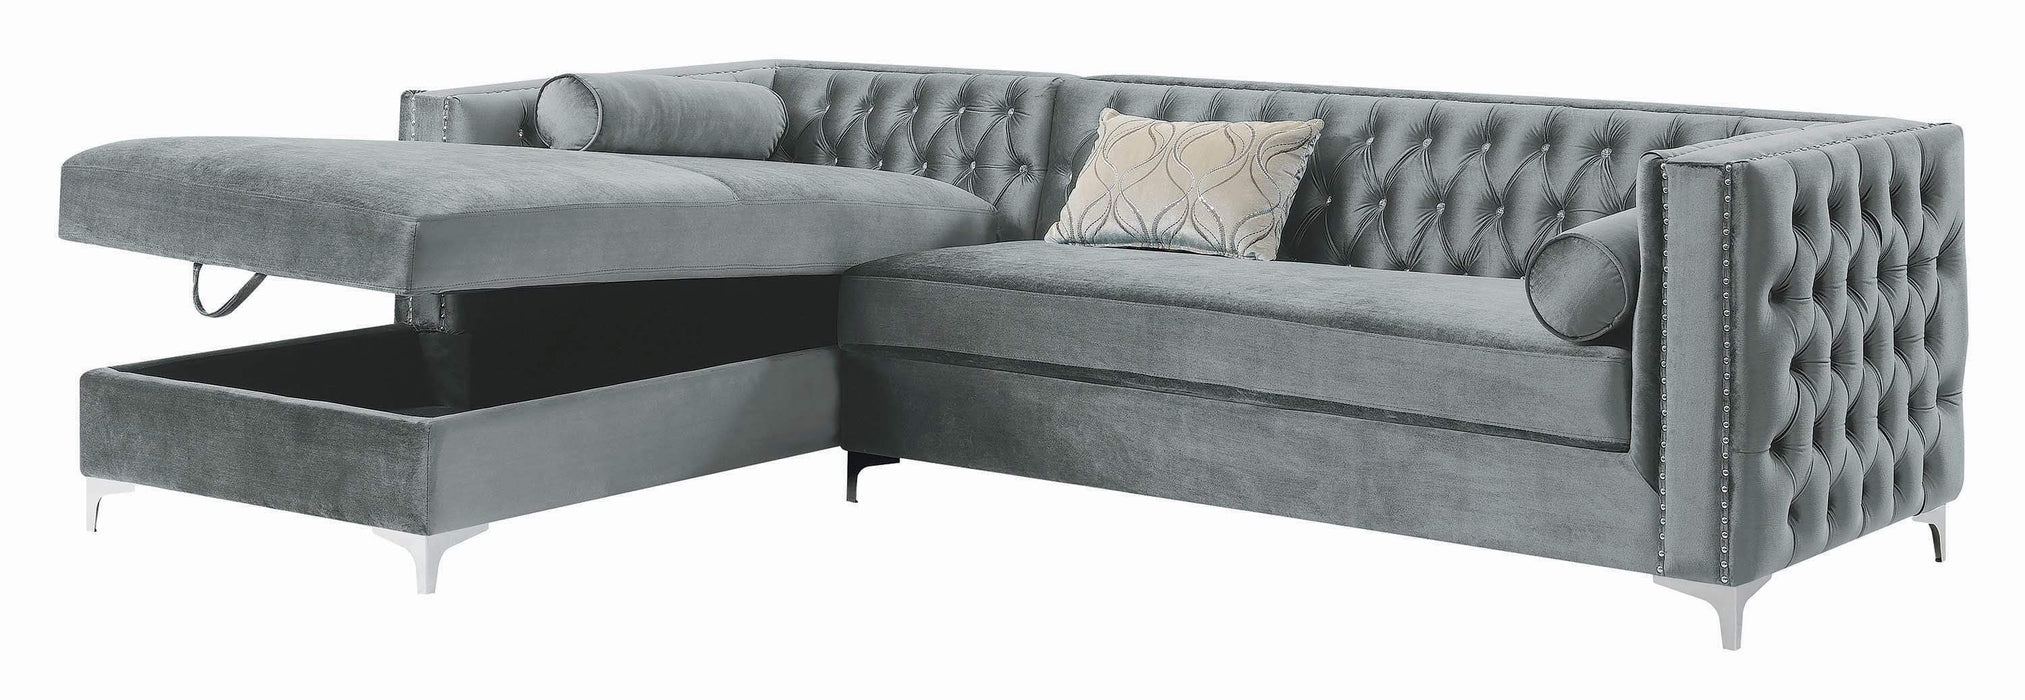 Bellaire_Contemporary_Silver_And_Chrome_Sectional_3